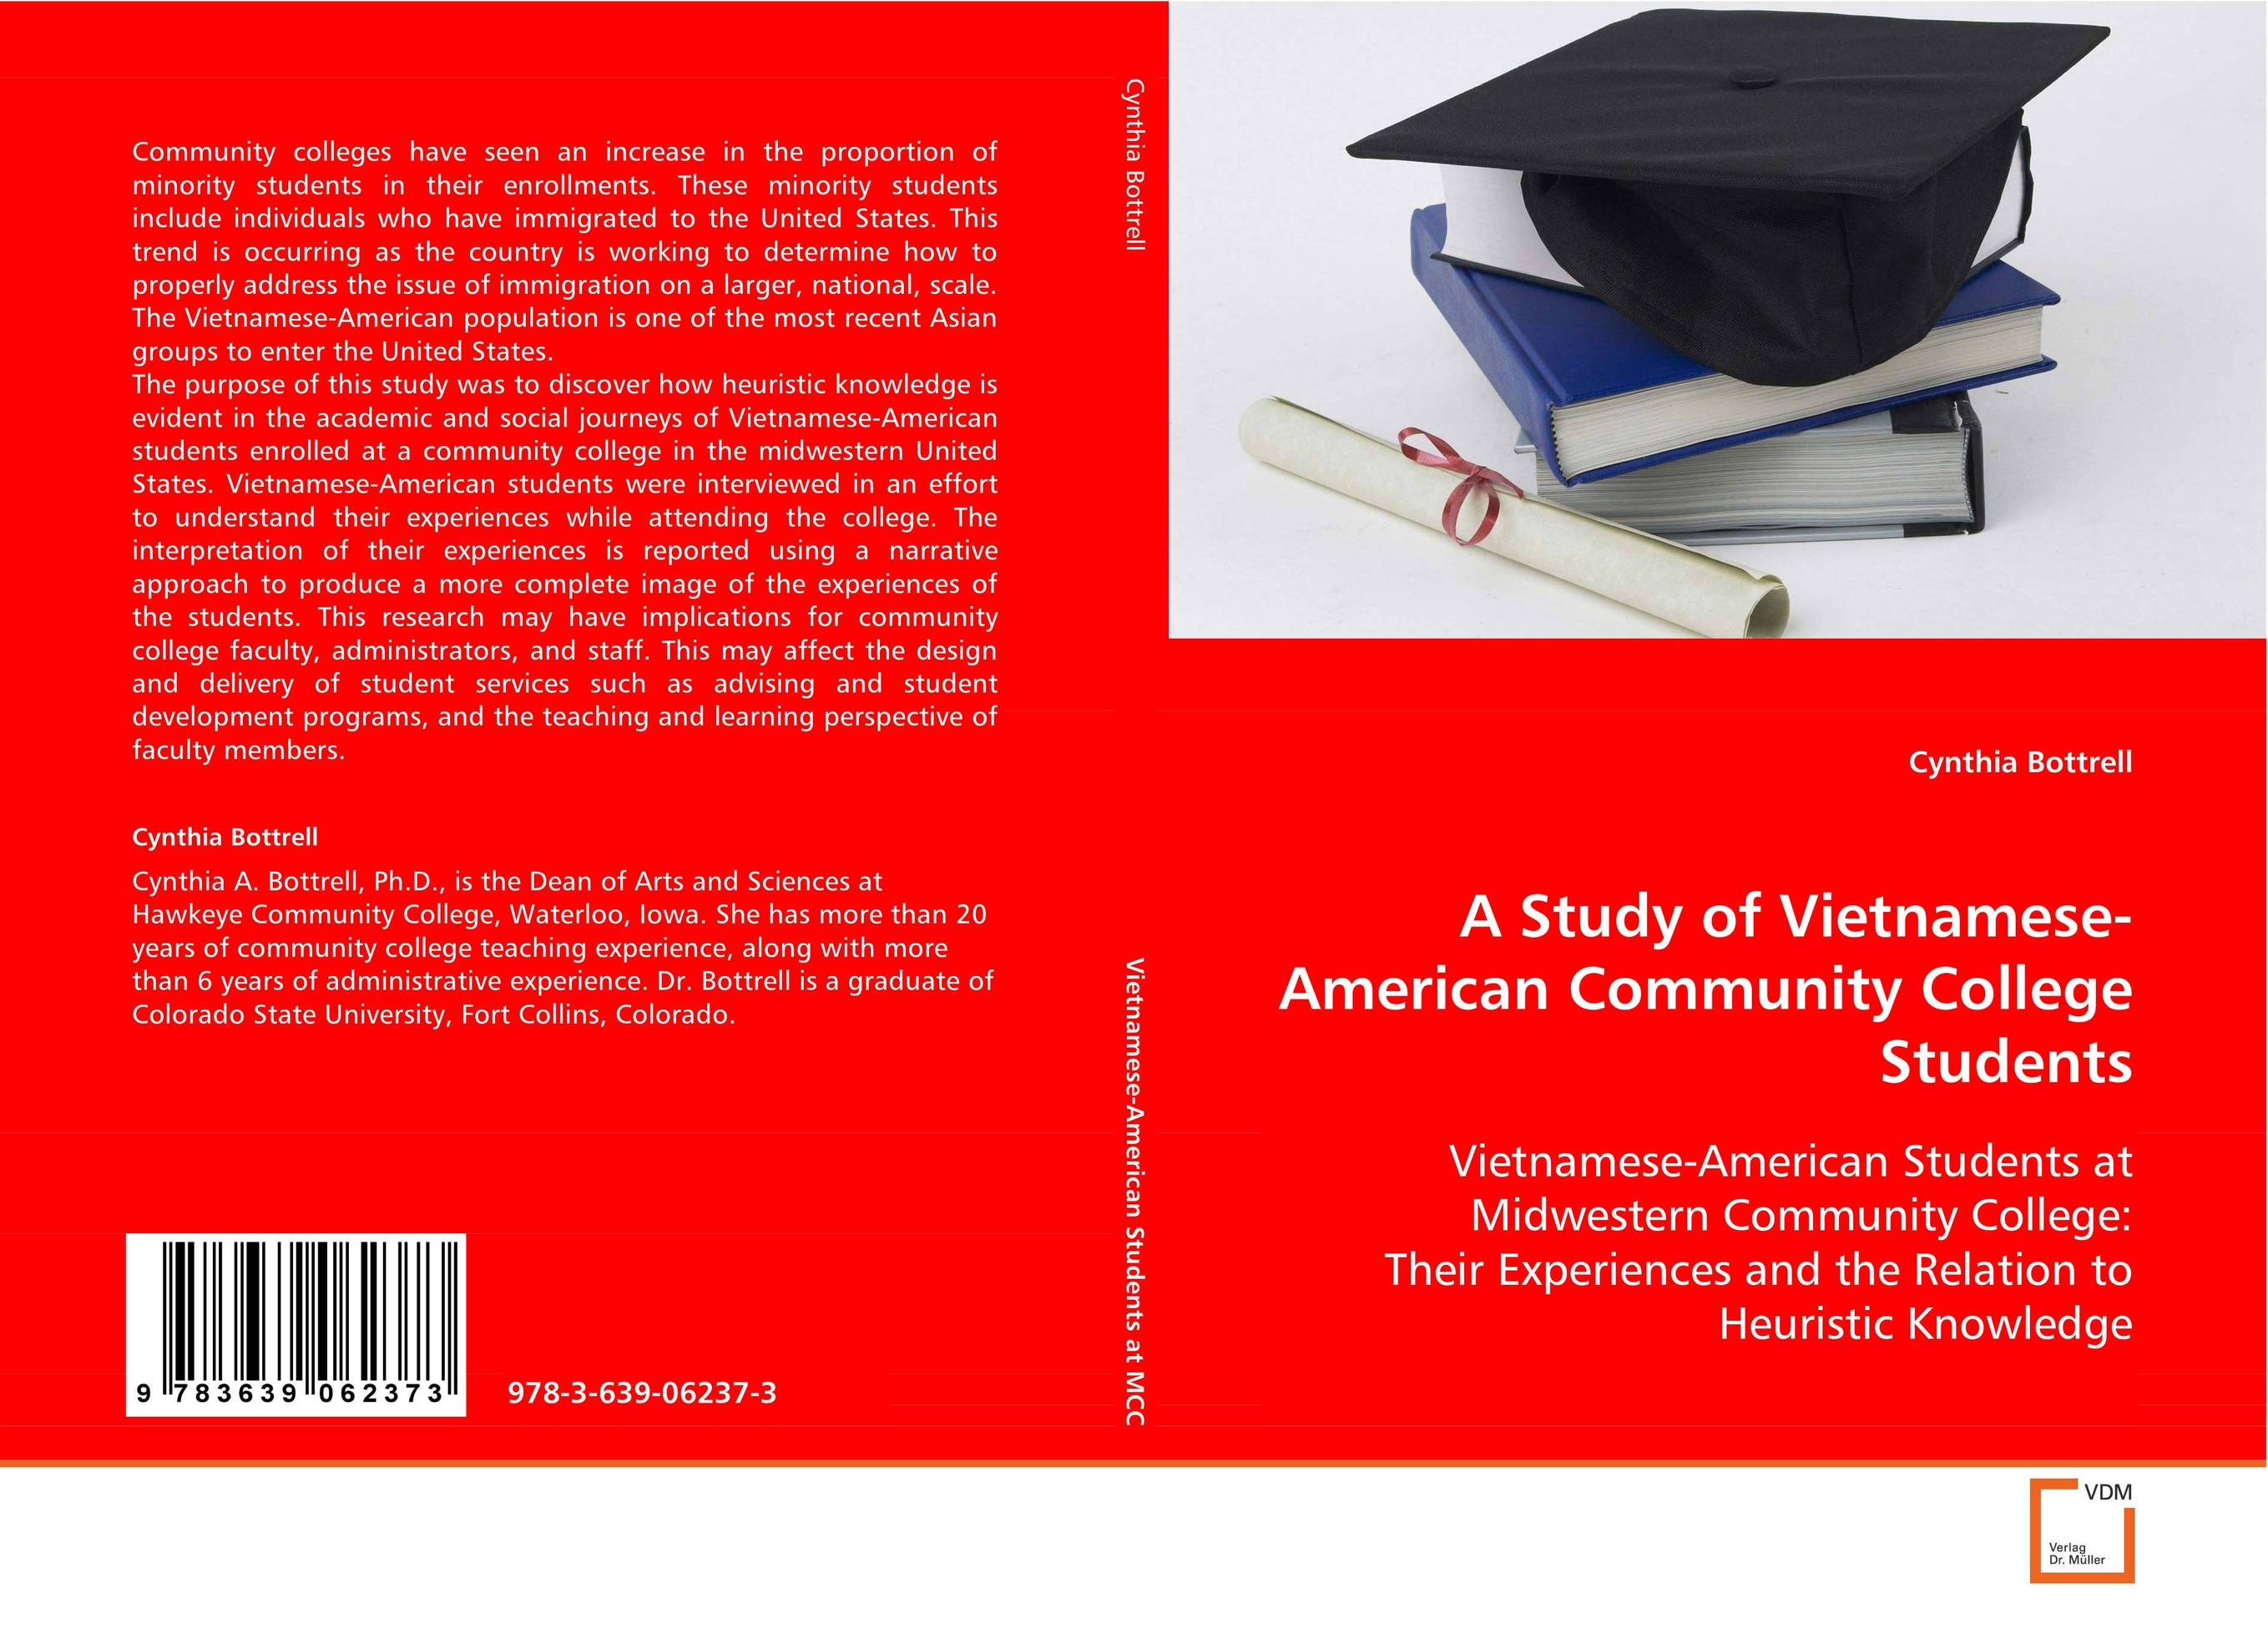 A Study of Vietnamese-American Community College Students community college students experiences with a leadership program